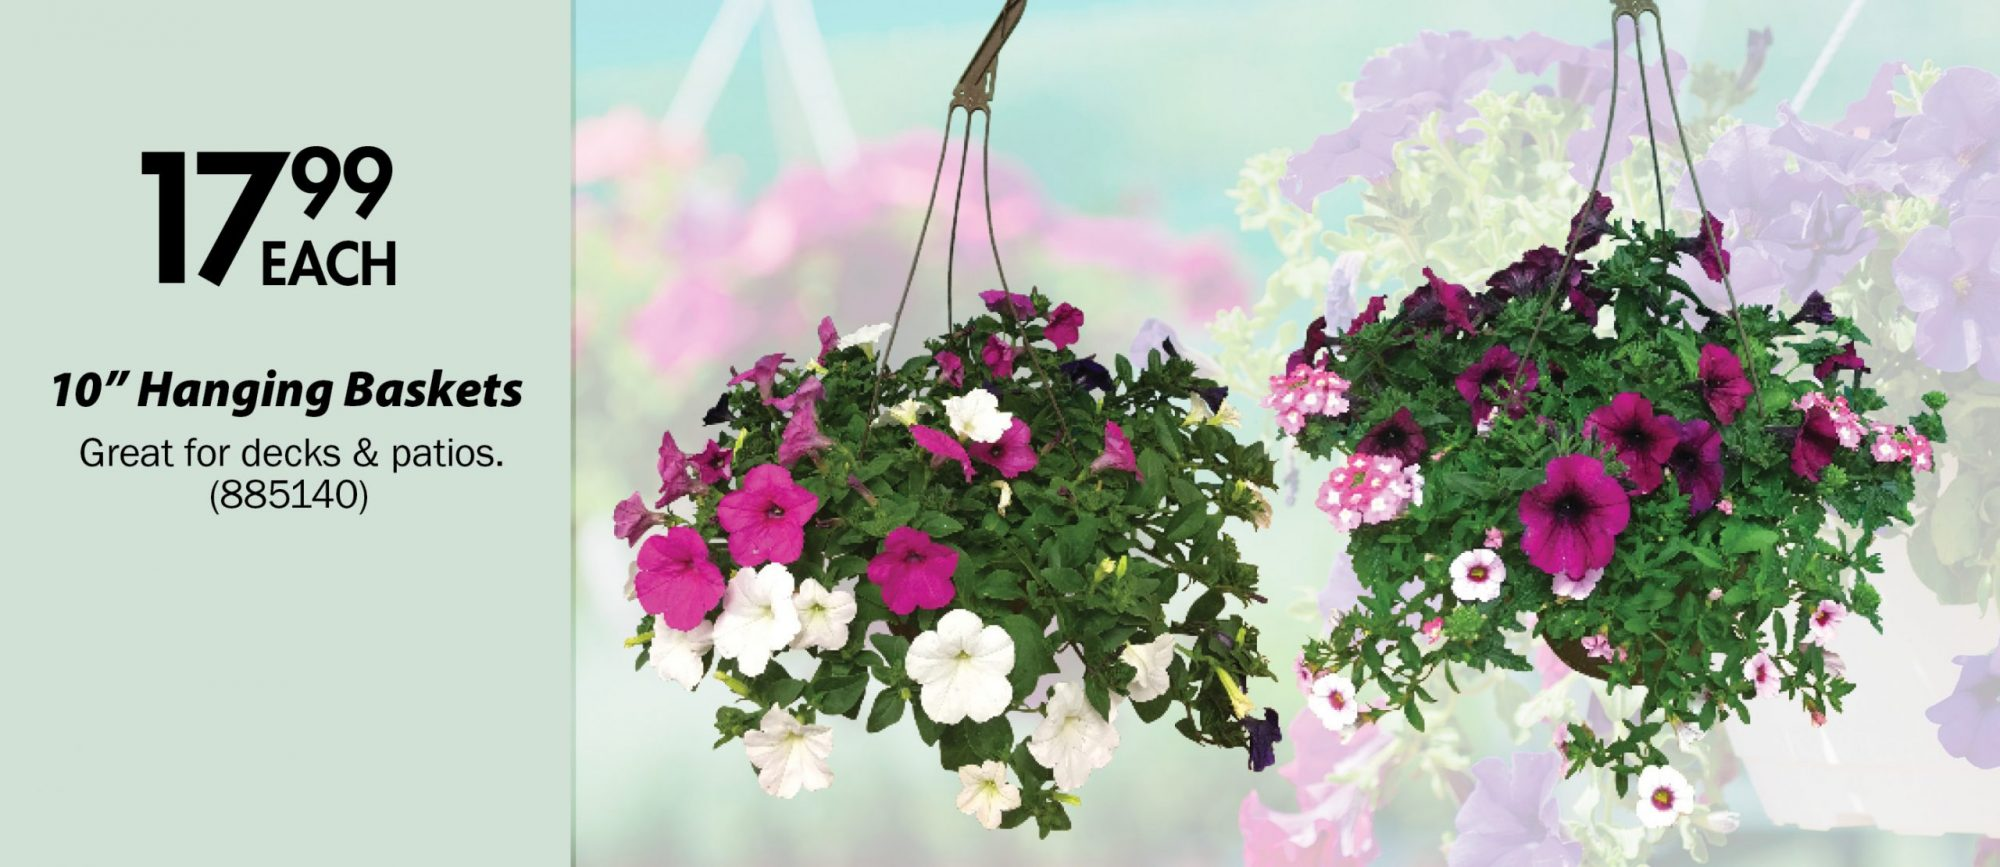 "$17.99 each. 10"" Hanging Baskets Great for decks & patios. (885140)"